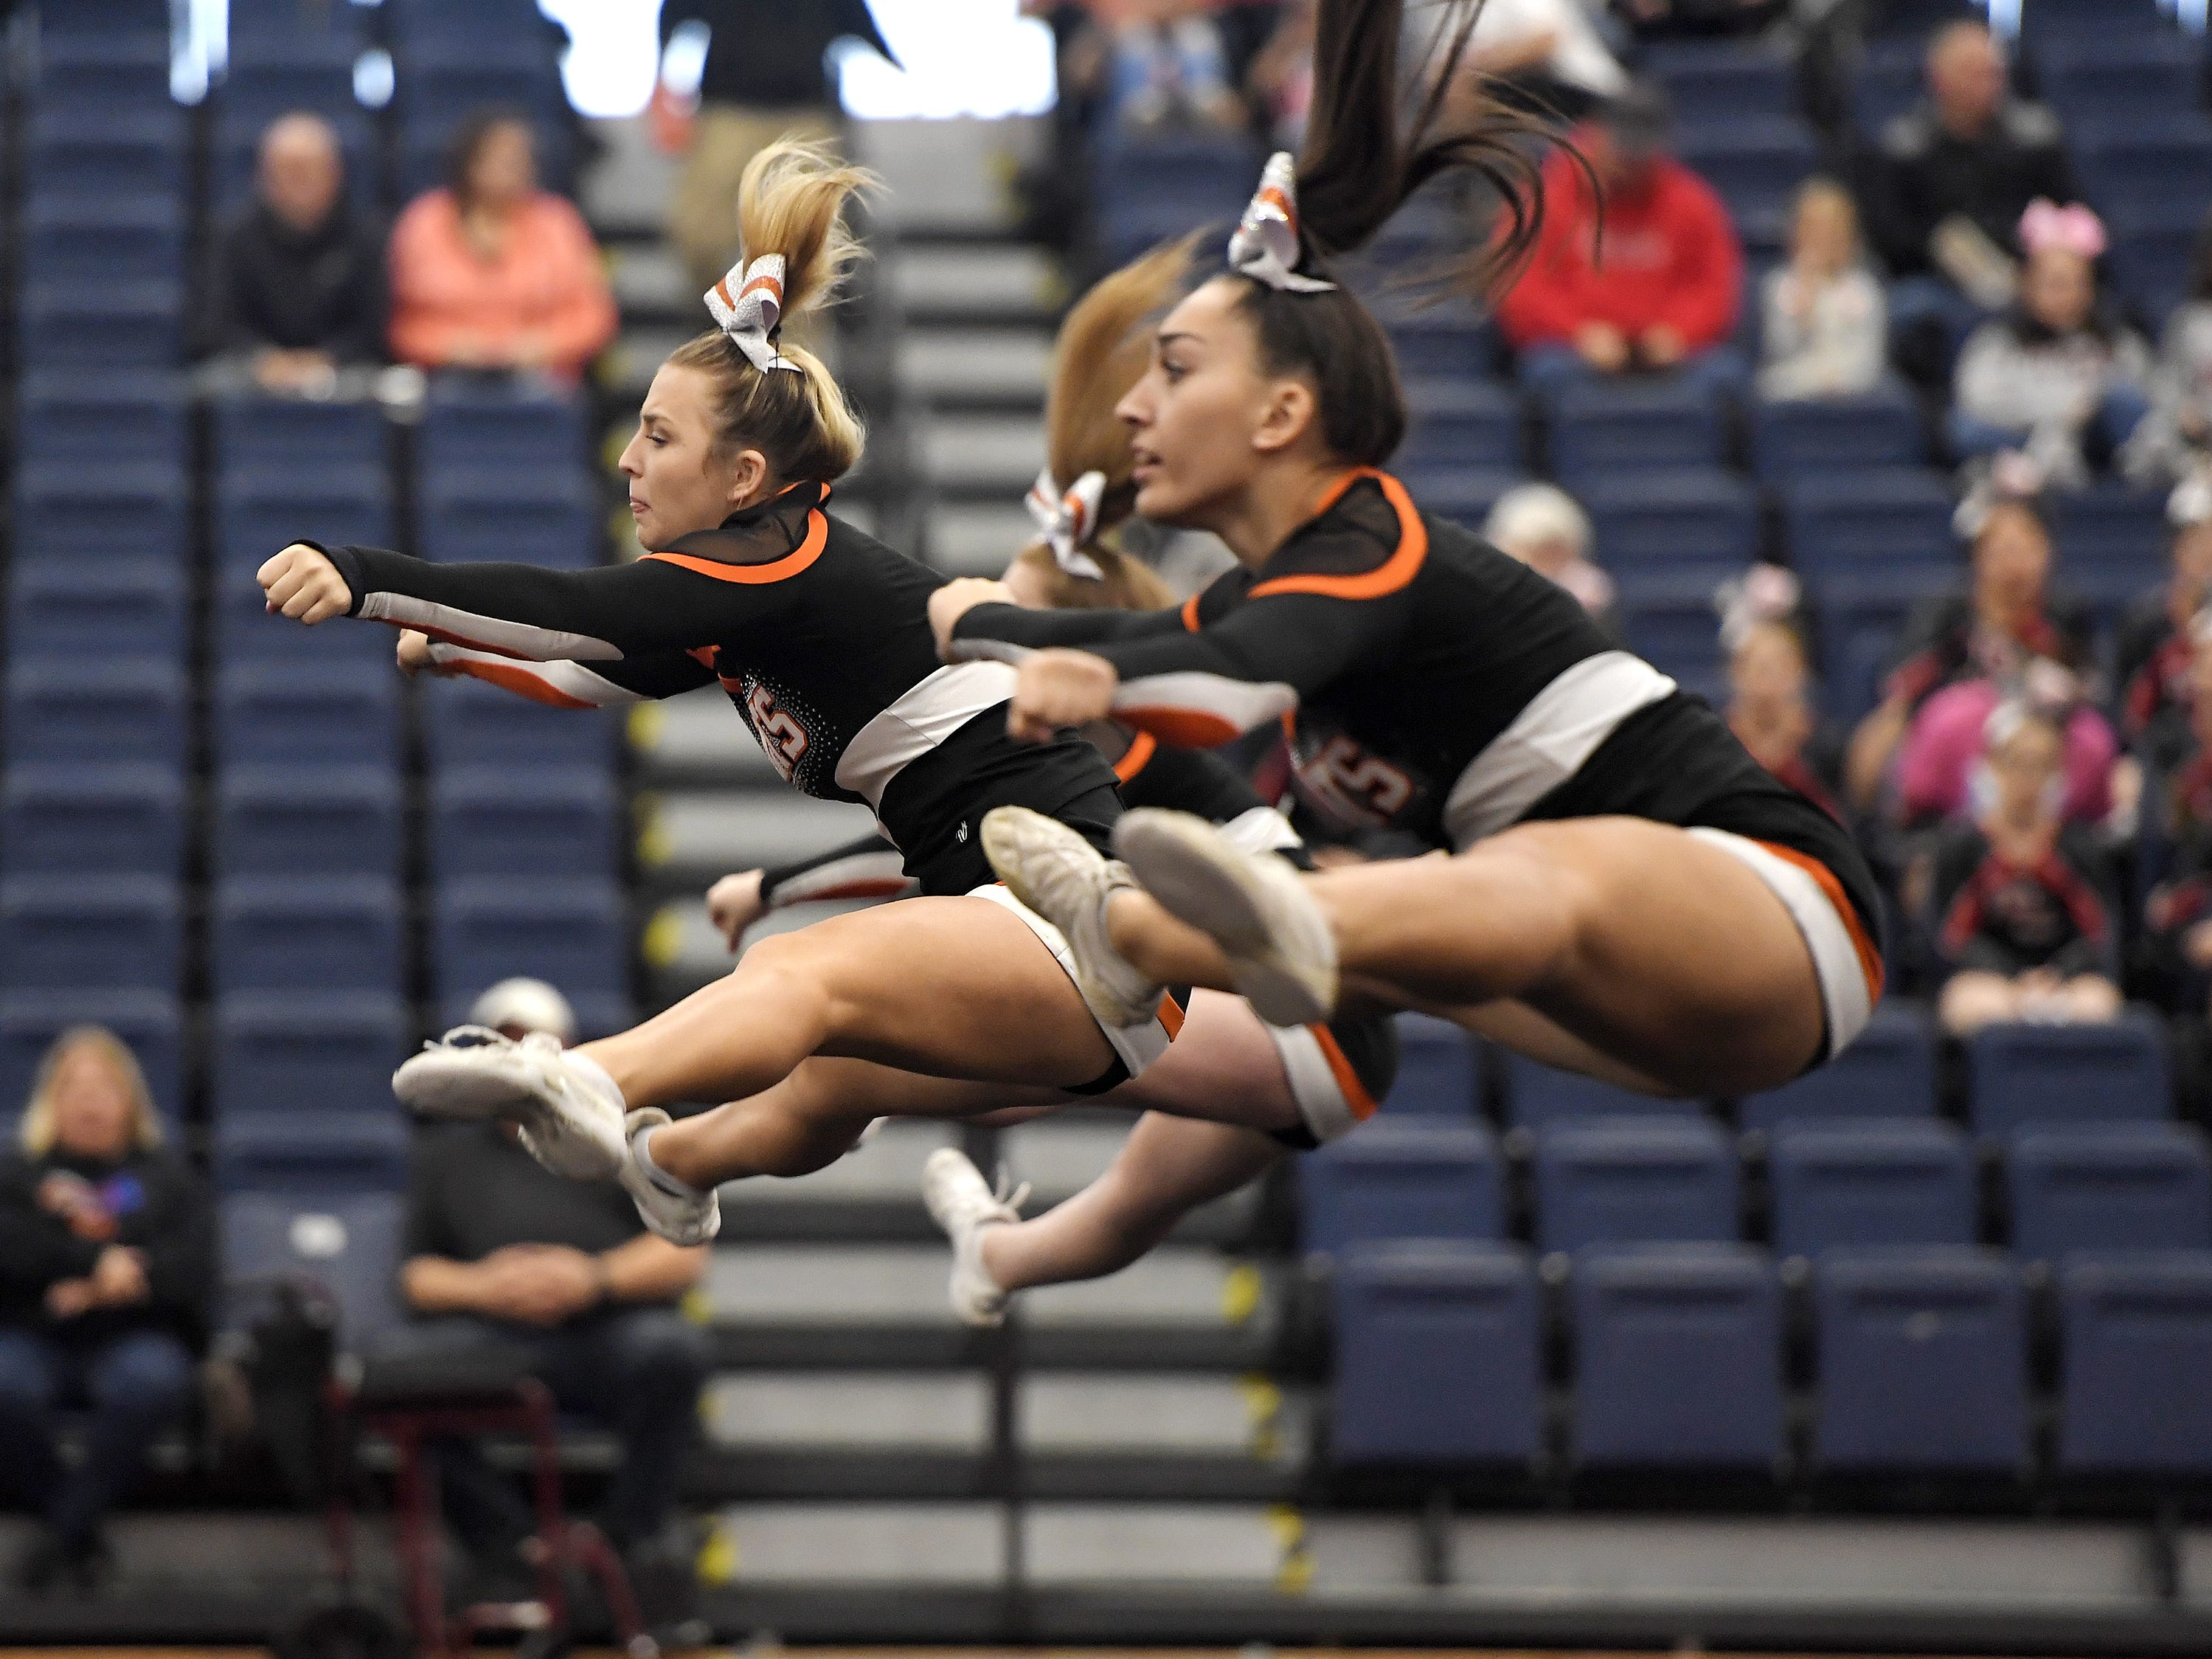 Churchville-Chili cheerleaders perform their routine during the Section V Fall Cheerleading Championships at RIT, Saturday, Oct. 27, 2018.